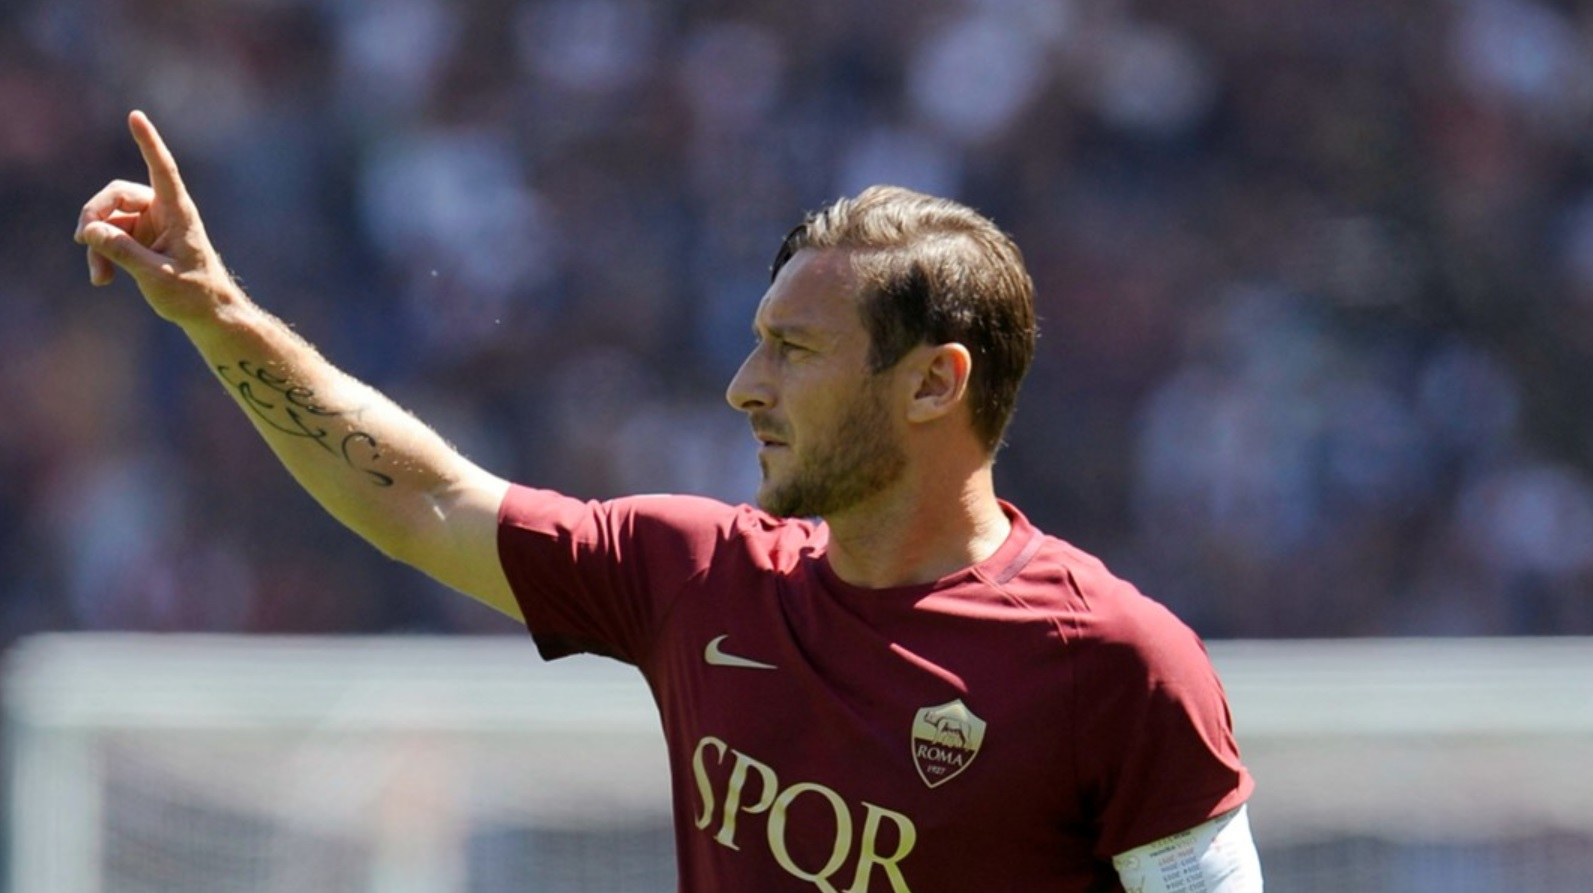 Totti scored most goals for AS Roma